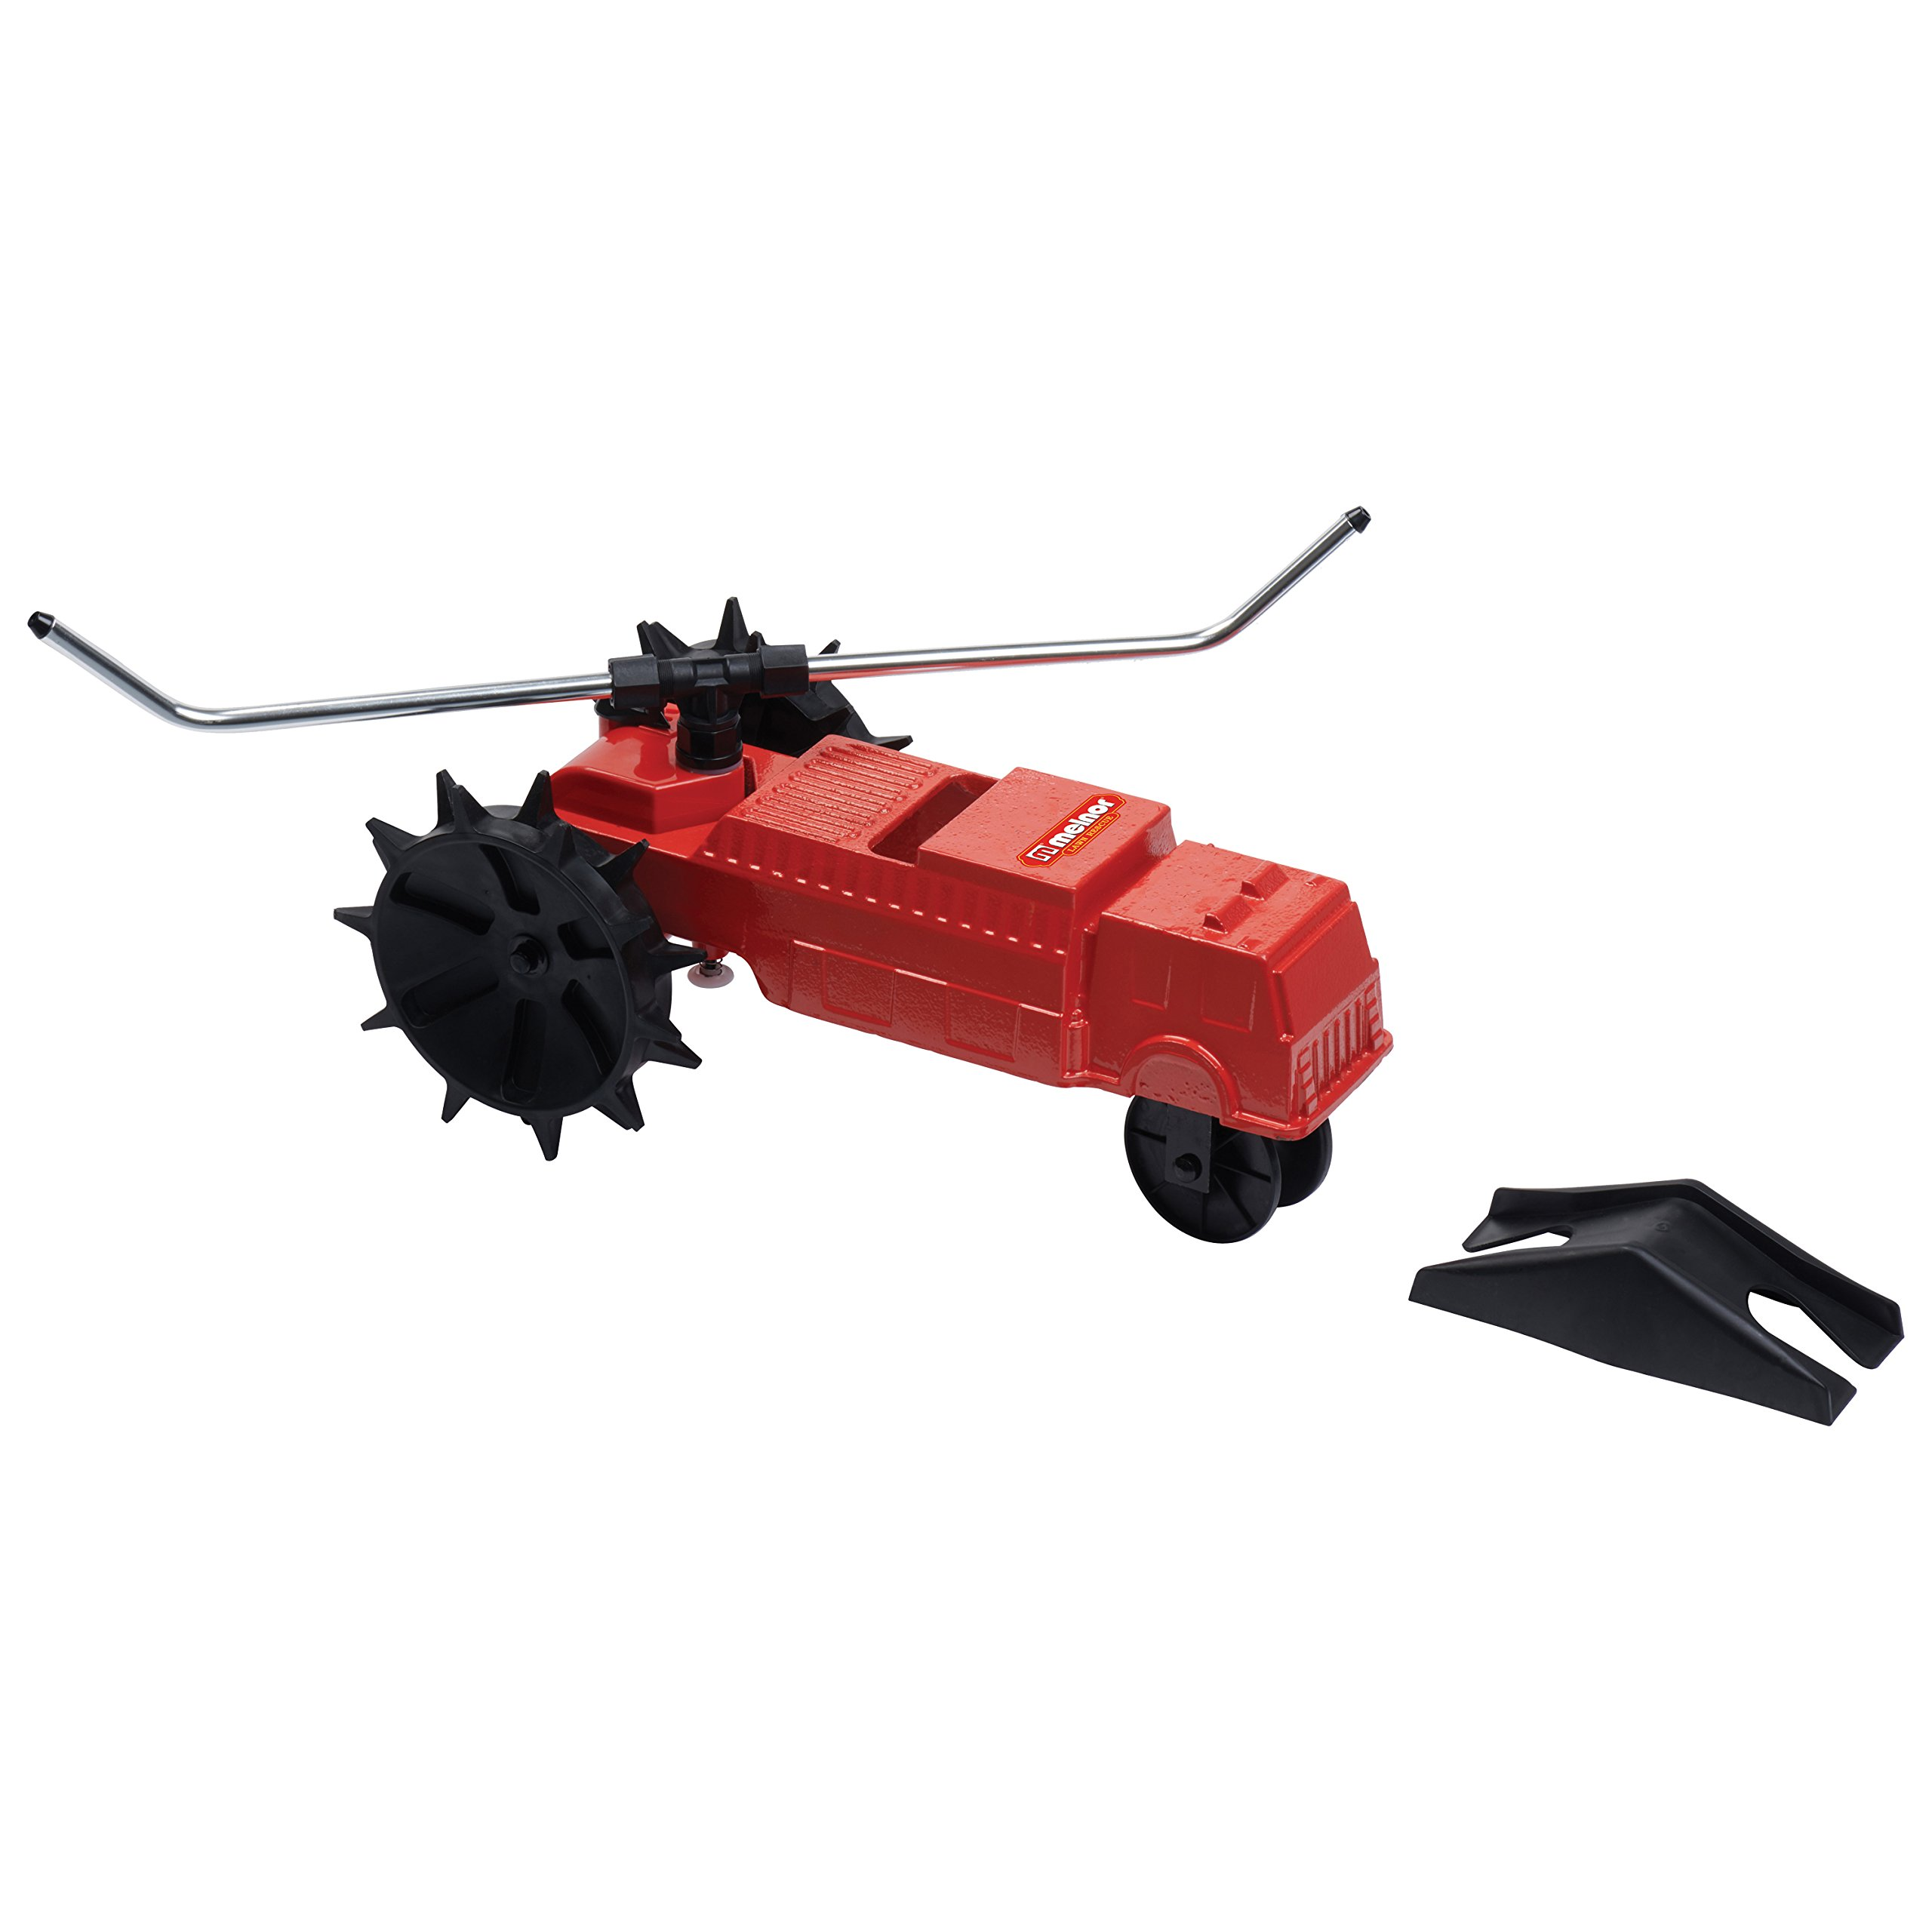 Melnor 4501 Traveling Sprinkler Lawn Rescue - 13,500 sq. ft. Coverage Variable Speed Control with Adjustable Spray Arms